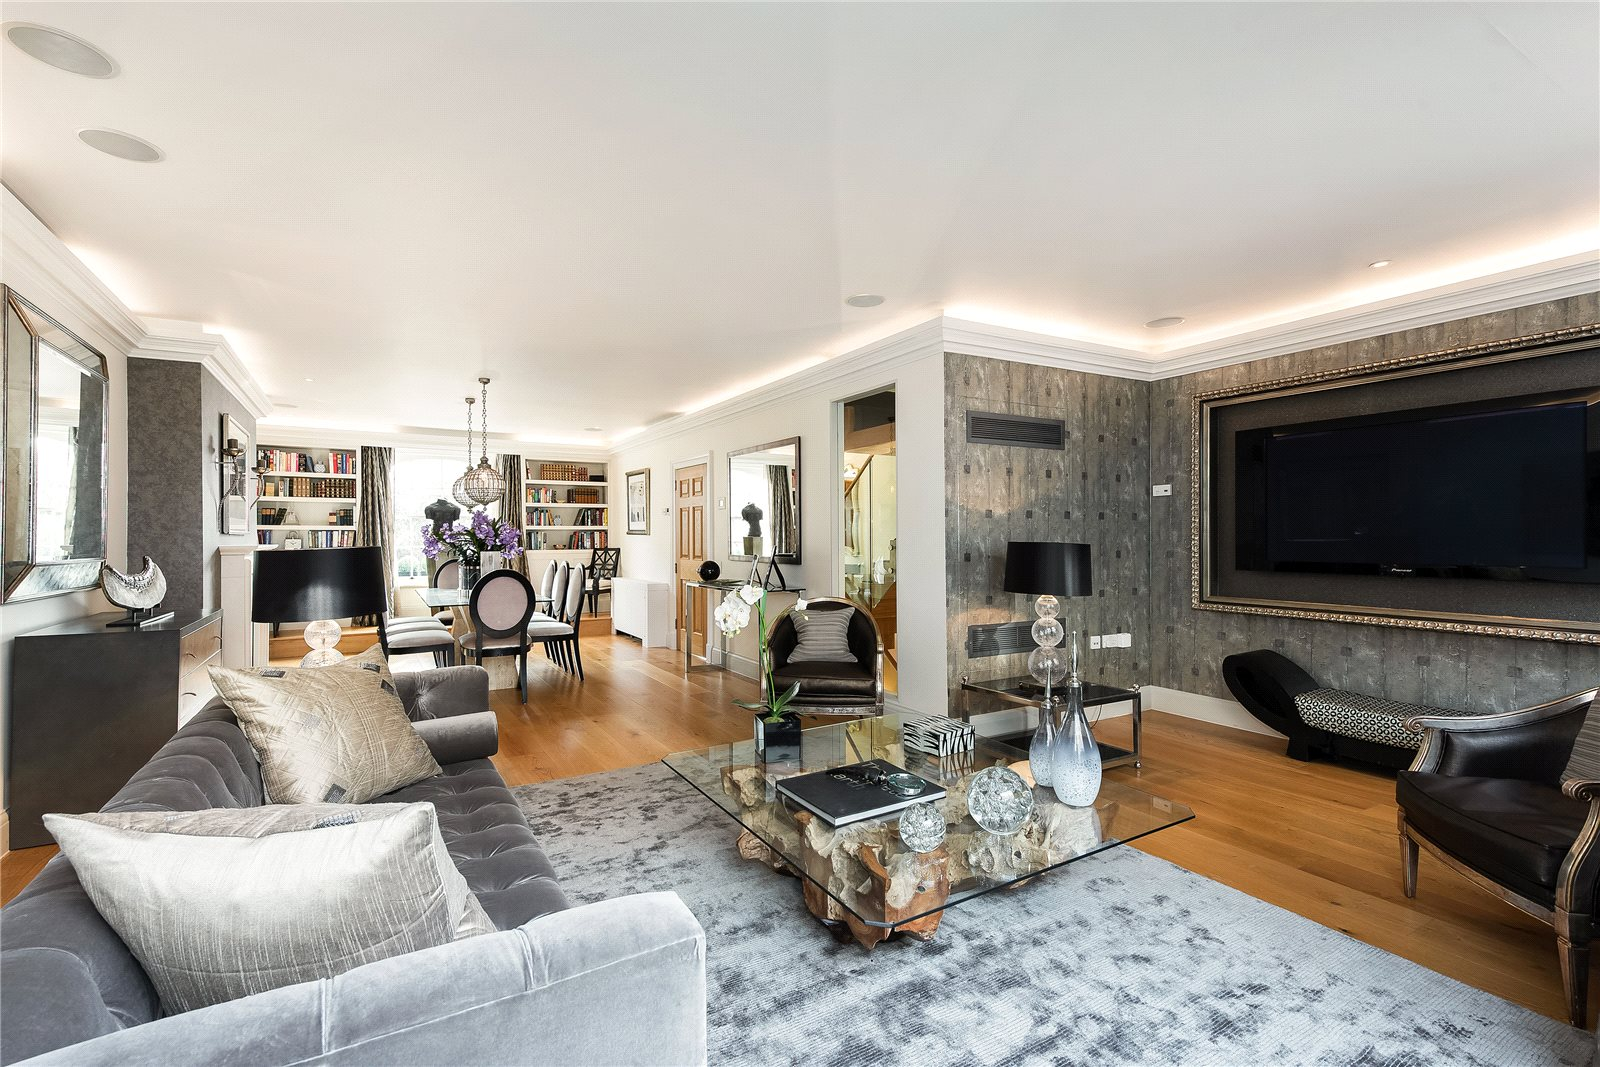 Additional photo for property listing at Clareville Street, South Kensington, London, SW7 South Kensington, London, England